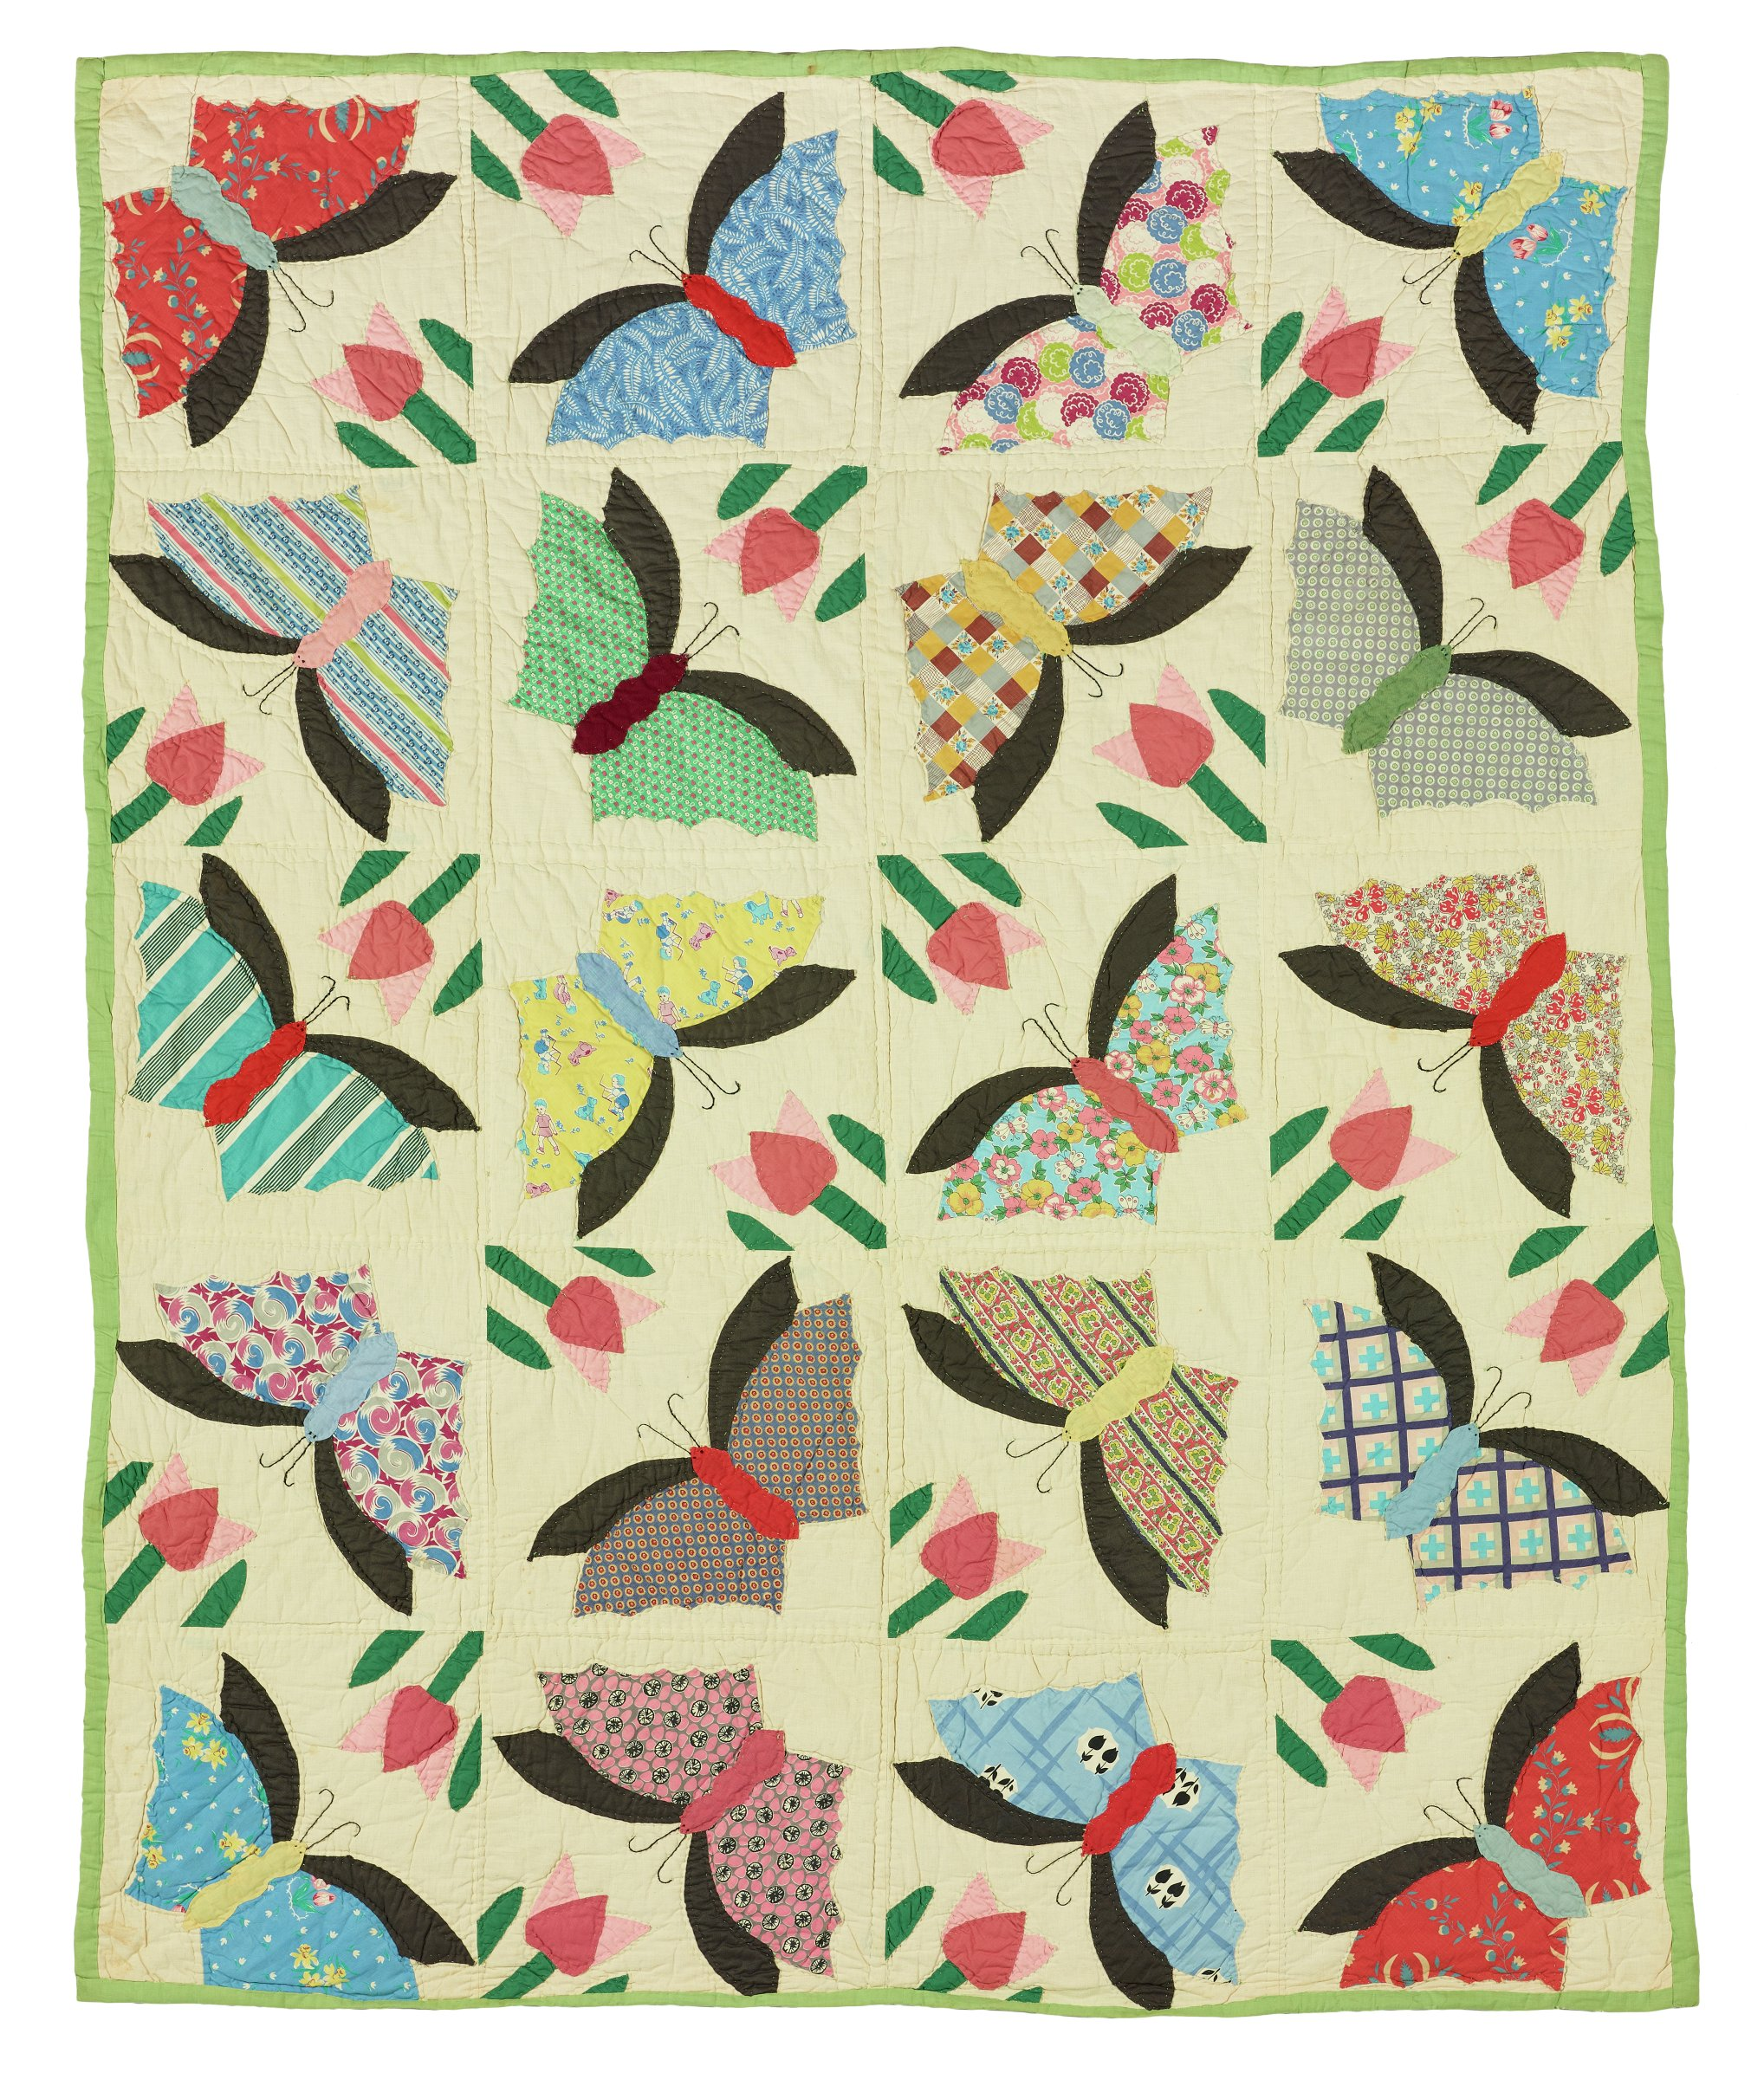 """Large, rectangular quilt made of cotton feed sacks in the """"Butterfly"""" pattern, pieced together in a grid of 20 blocks of white fabric edged in green, the center of each block with appliqued and embroidered butterflies in a variety of colorful patterns."""